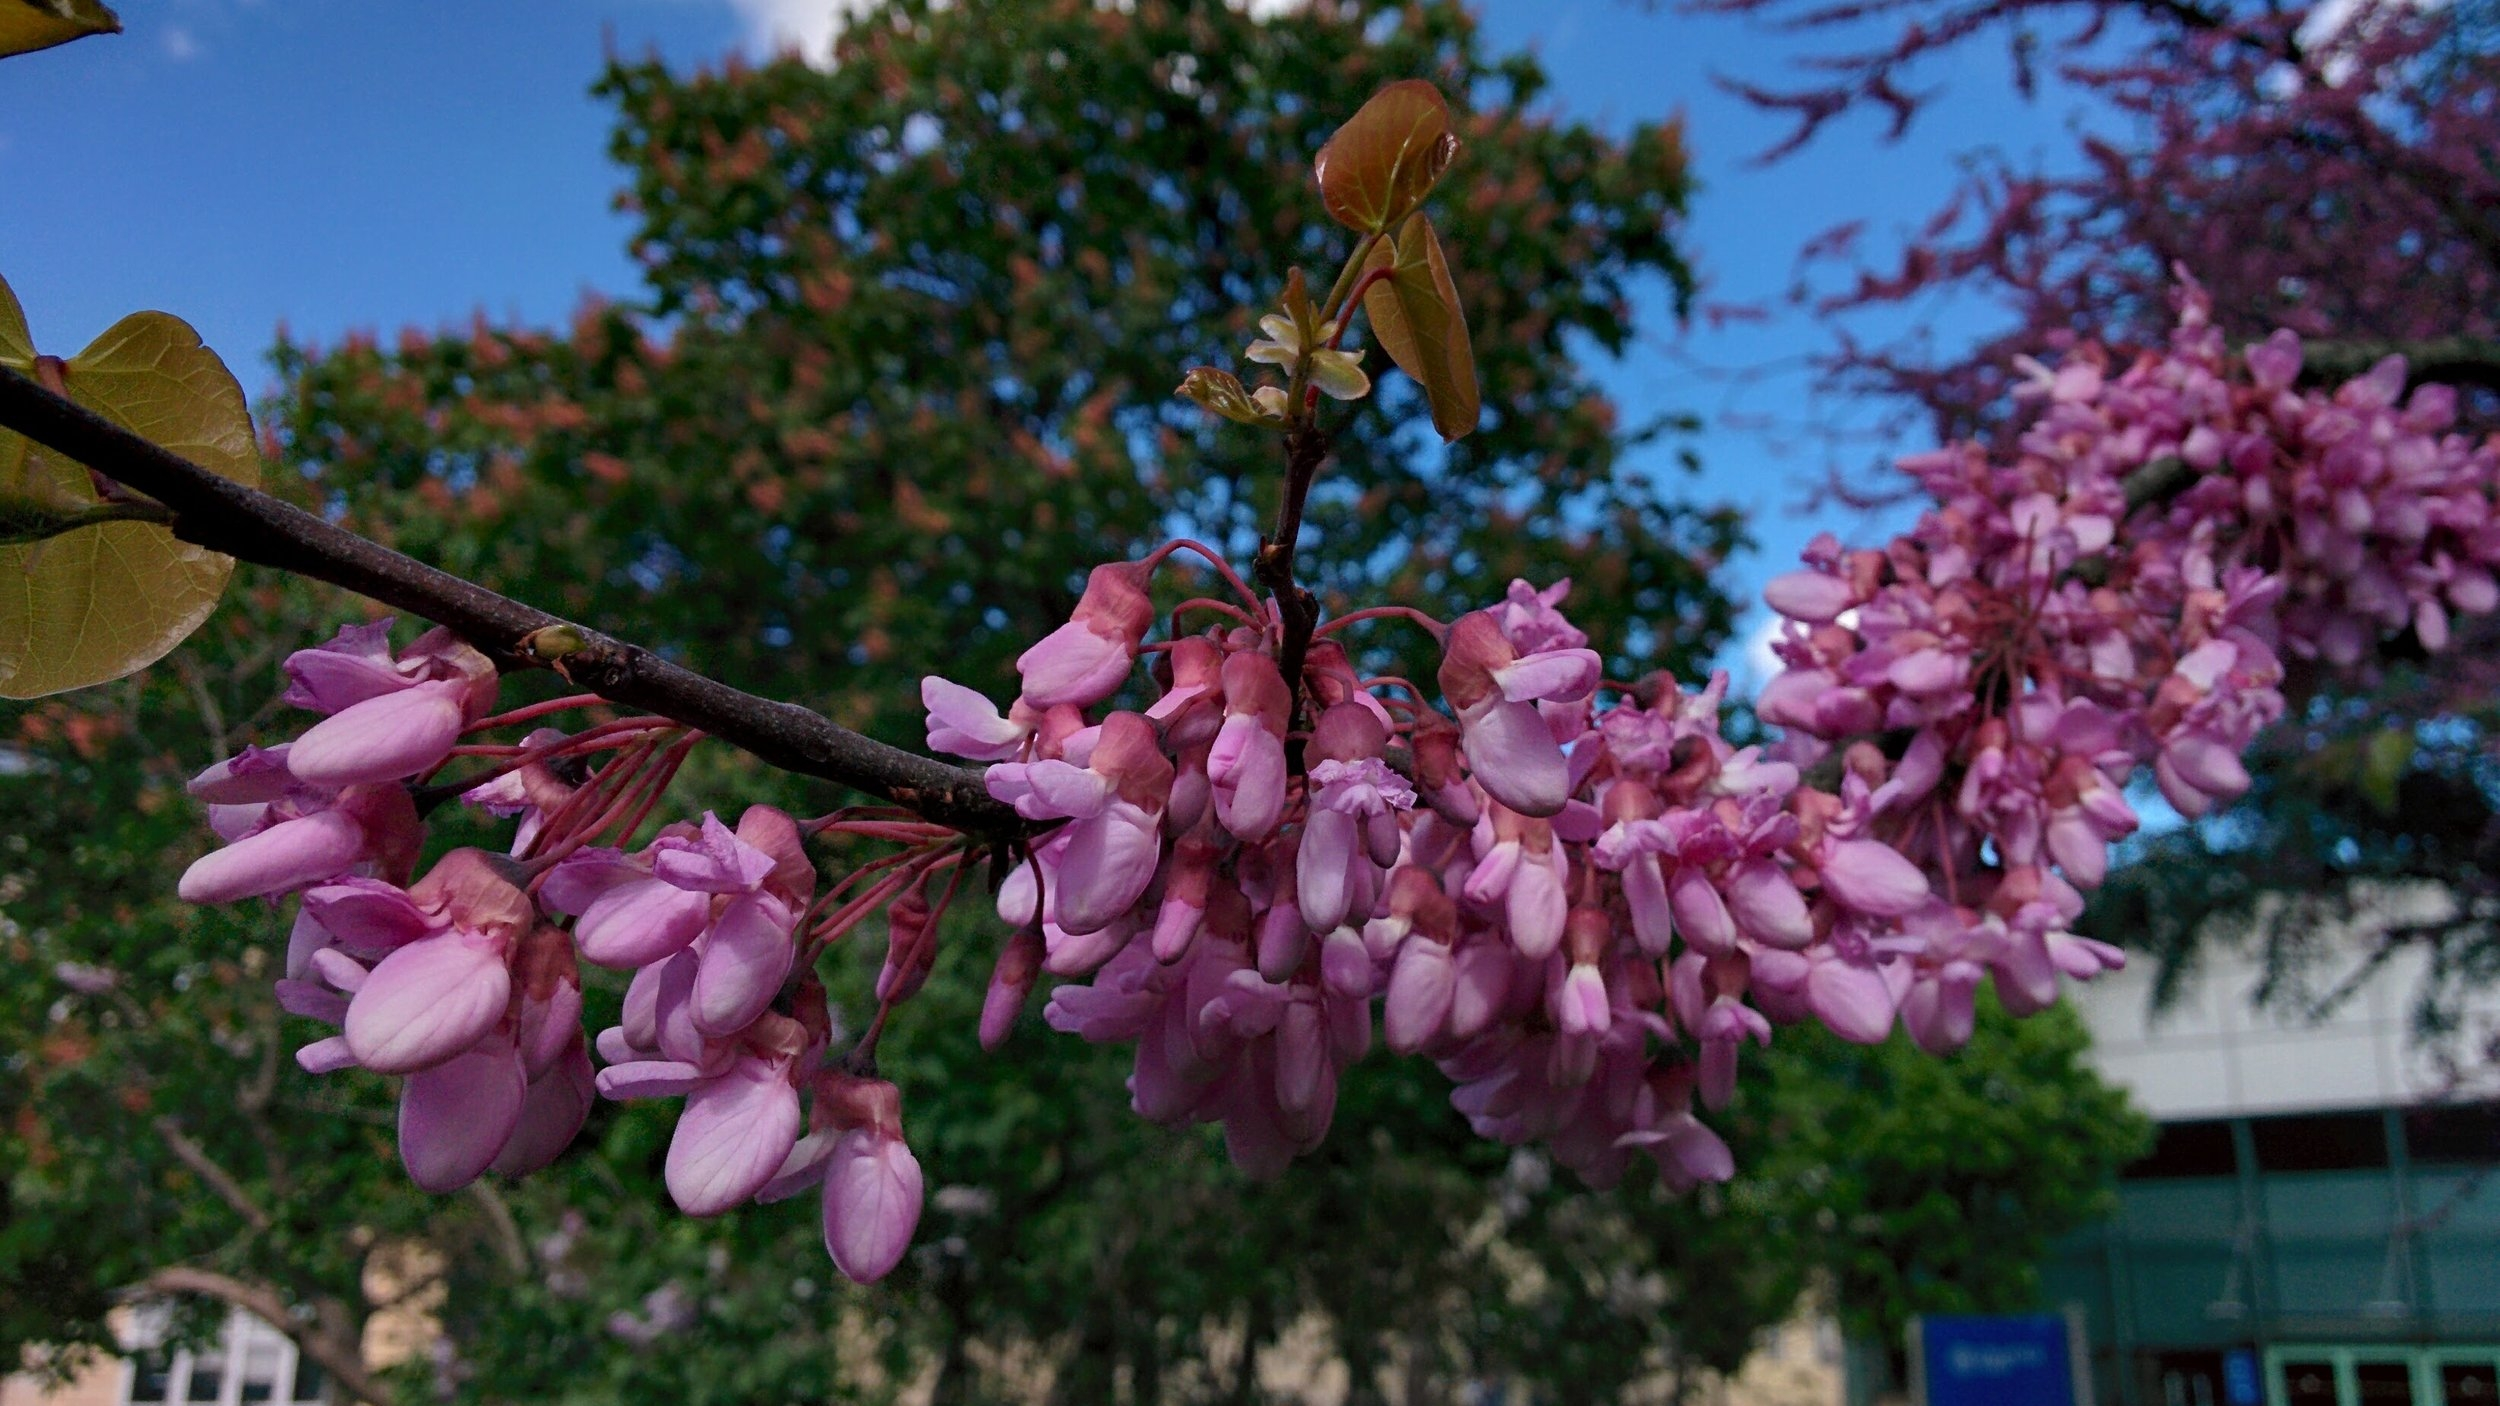 A close up of the Judas tree in the old general hospital in Vienna